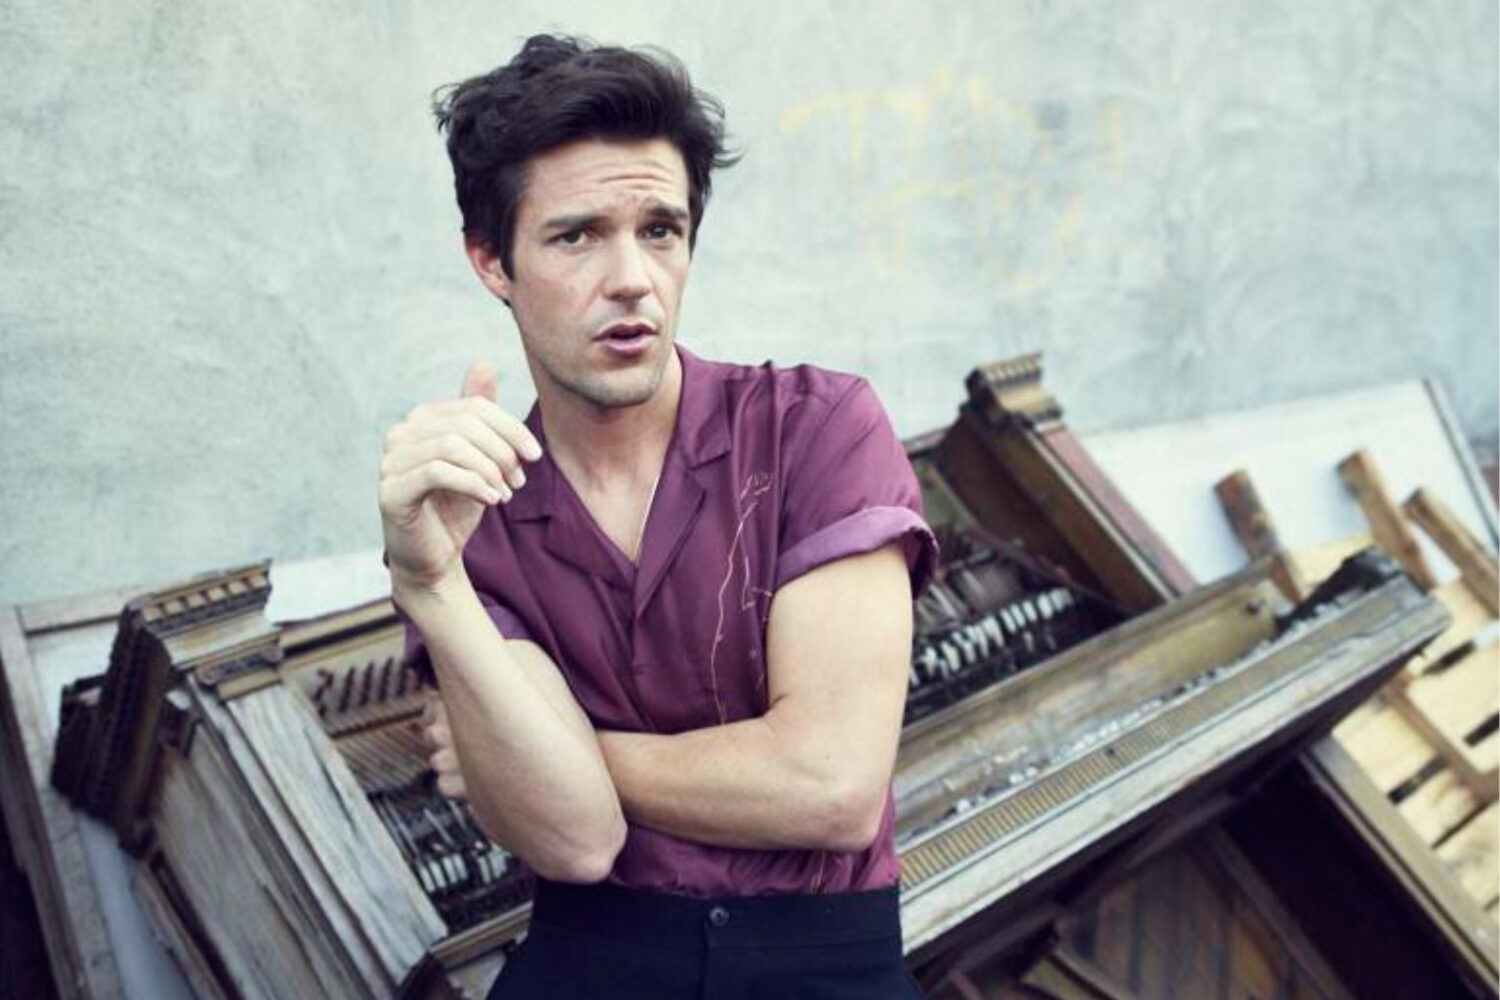 Watch Brandon Flowers play new song 'Come Out With Me' live